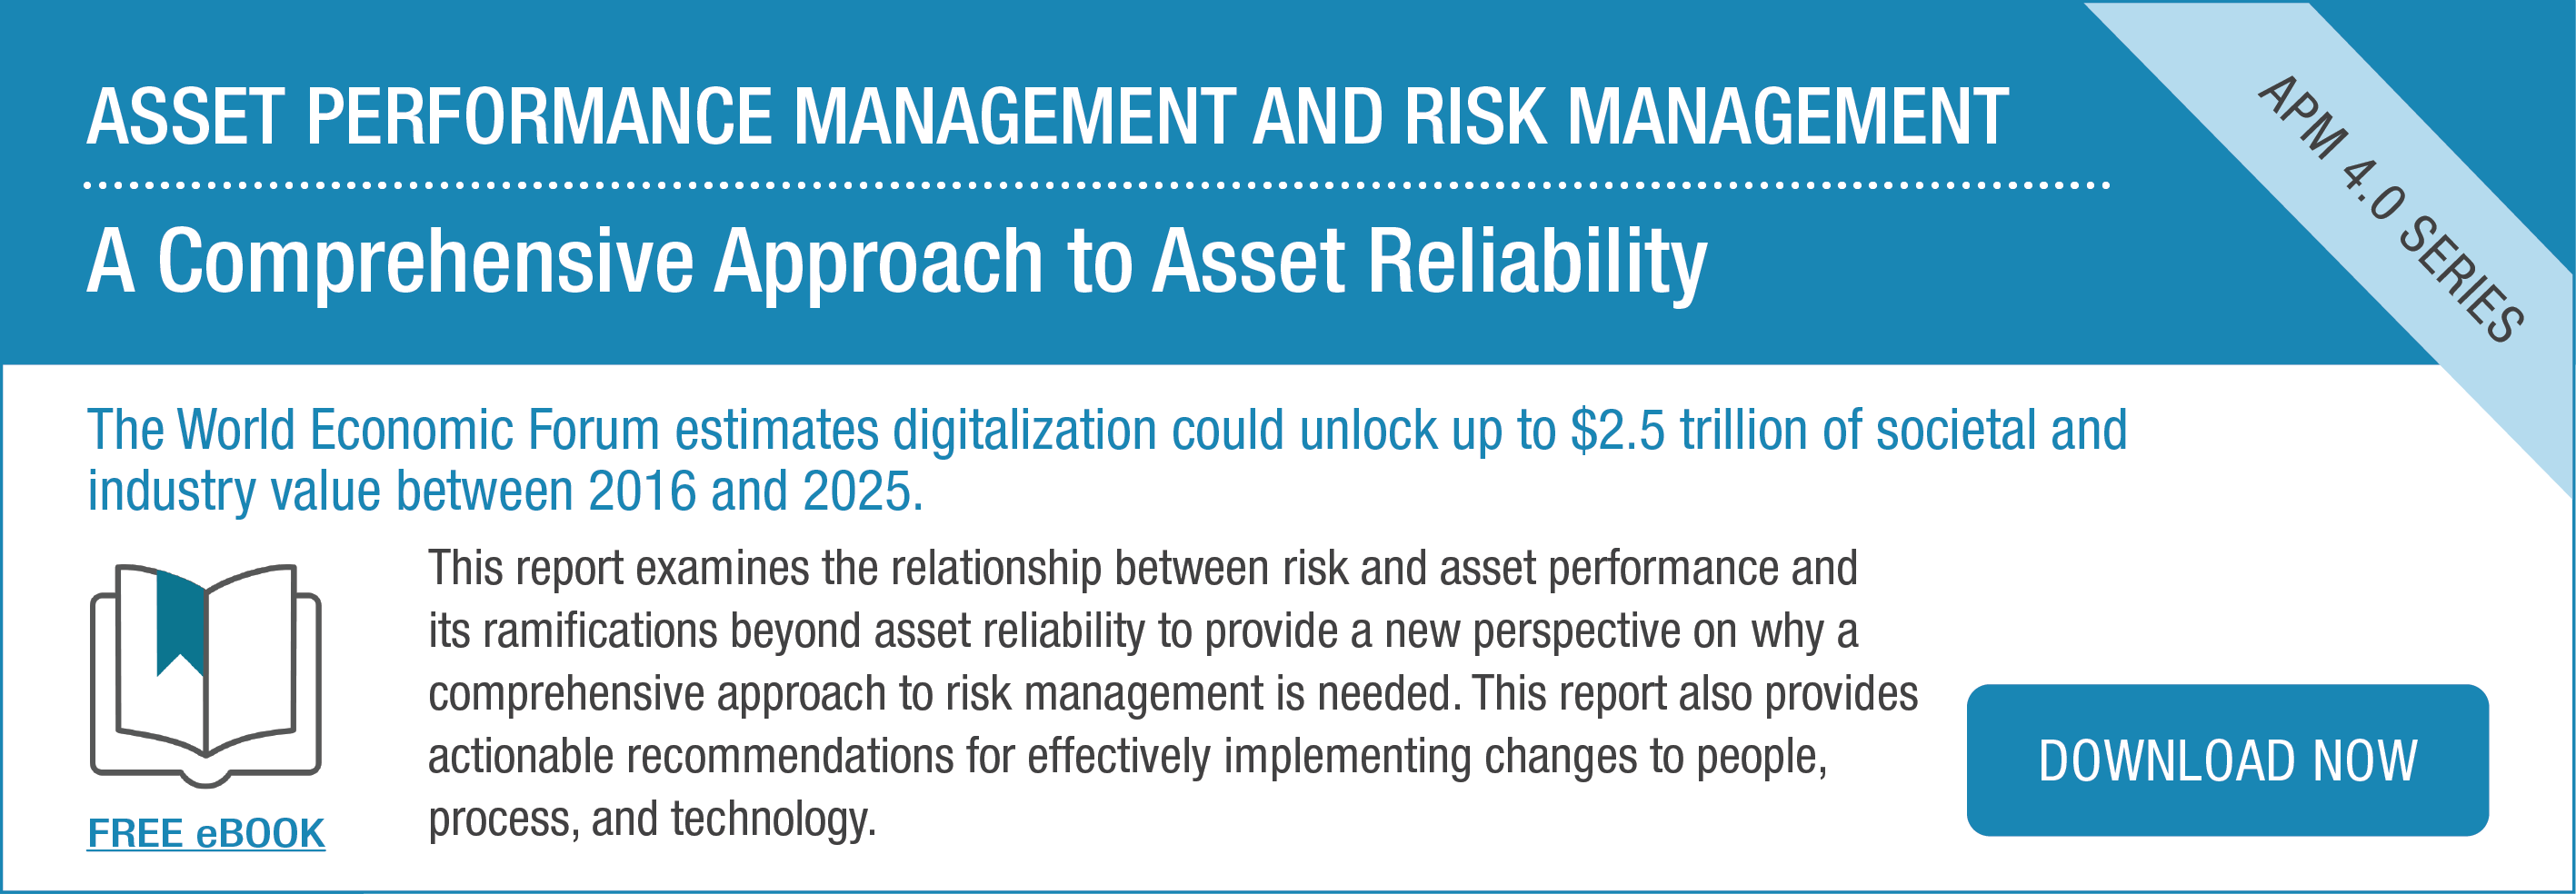 Download The Asset Performance Management and Risk Management Ebook